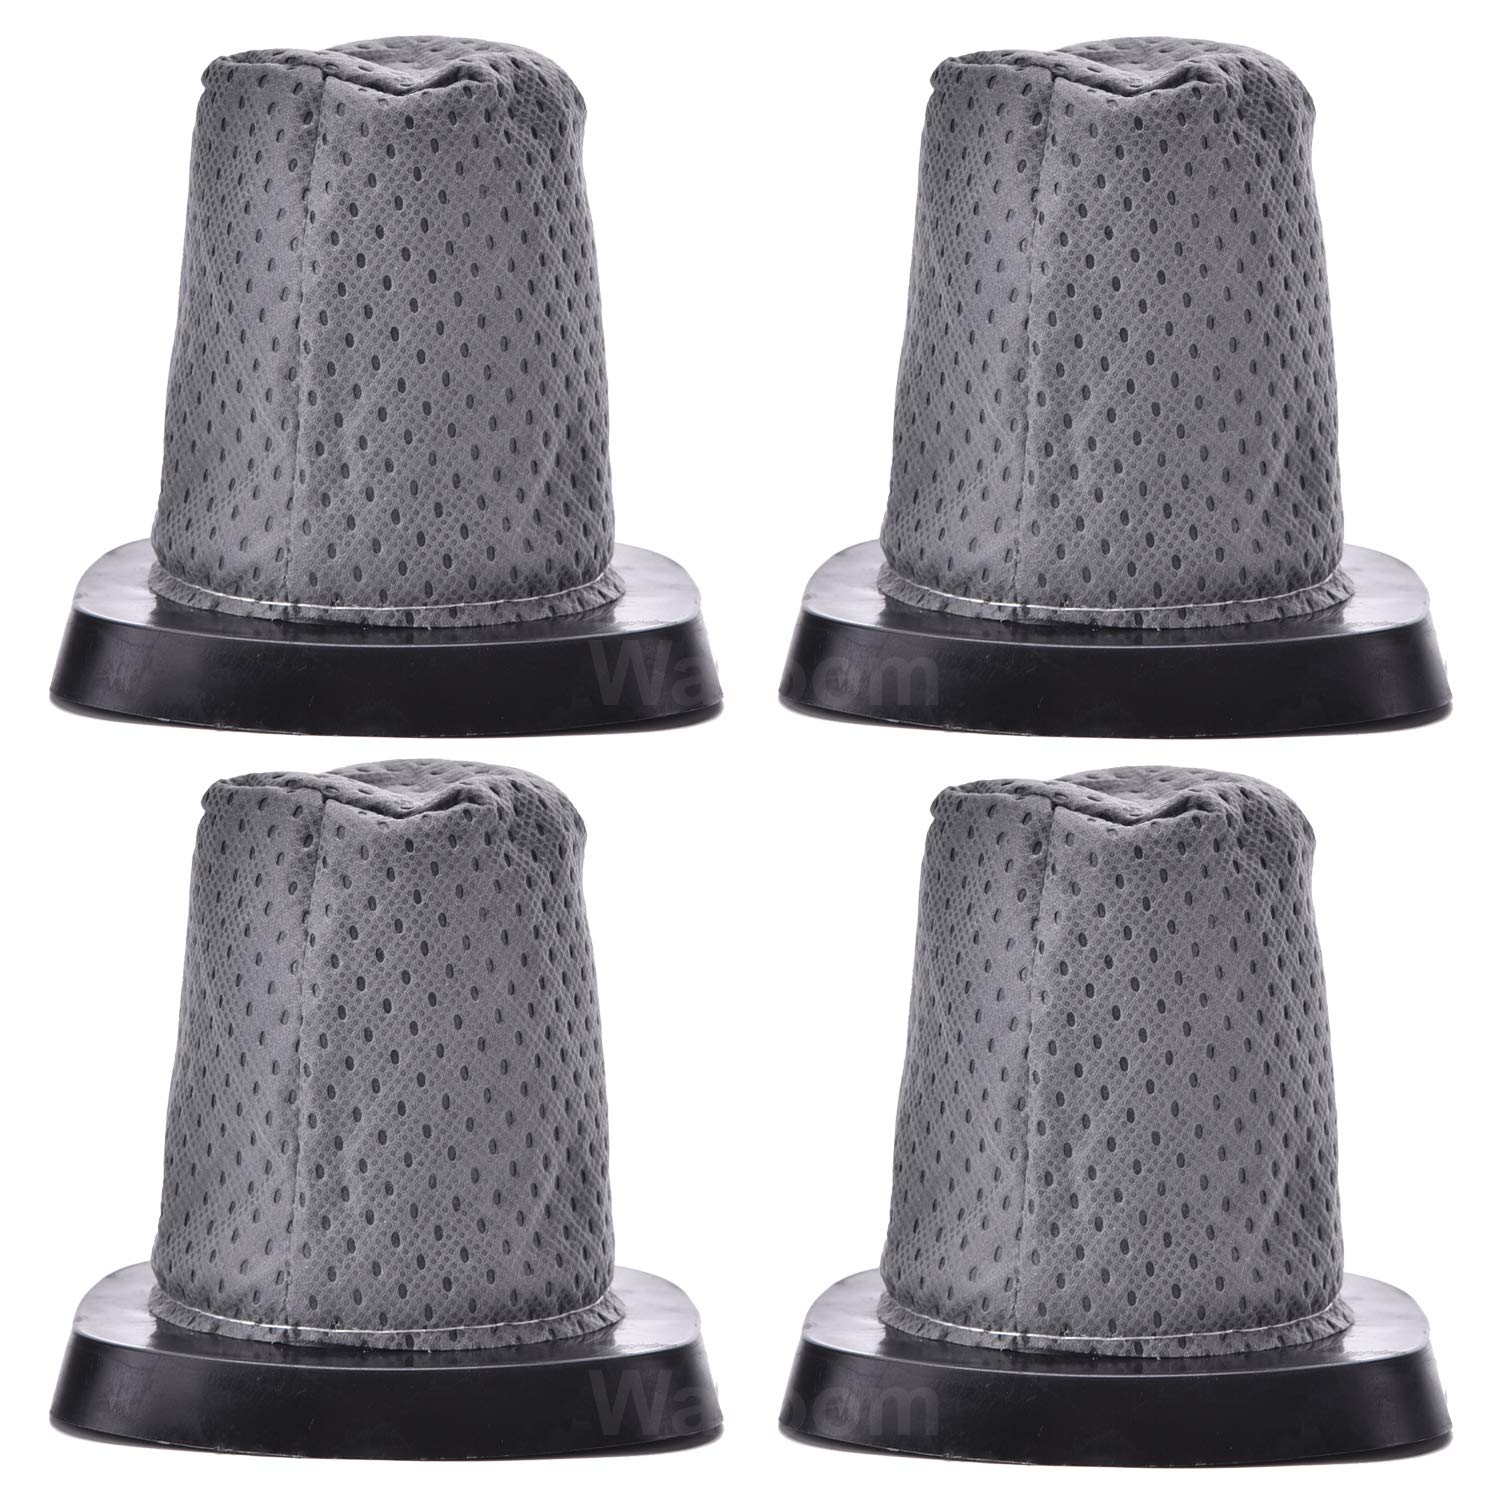 Waroom 4 Pack Replacement Dirt Devil F25 Filter, Compatible with Dirt Devil 083405 Series Swift Stick Vacuum,Part # 2SV1102000